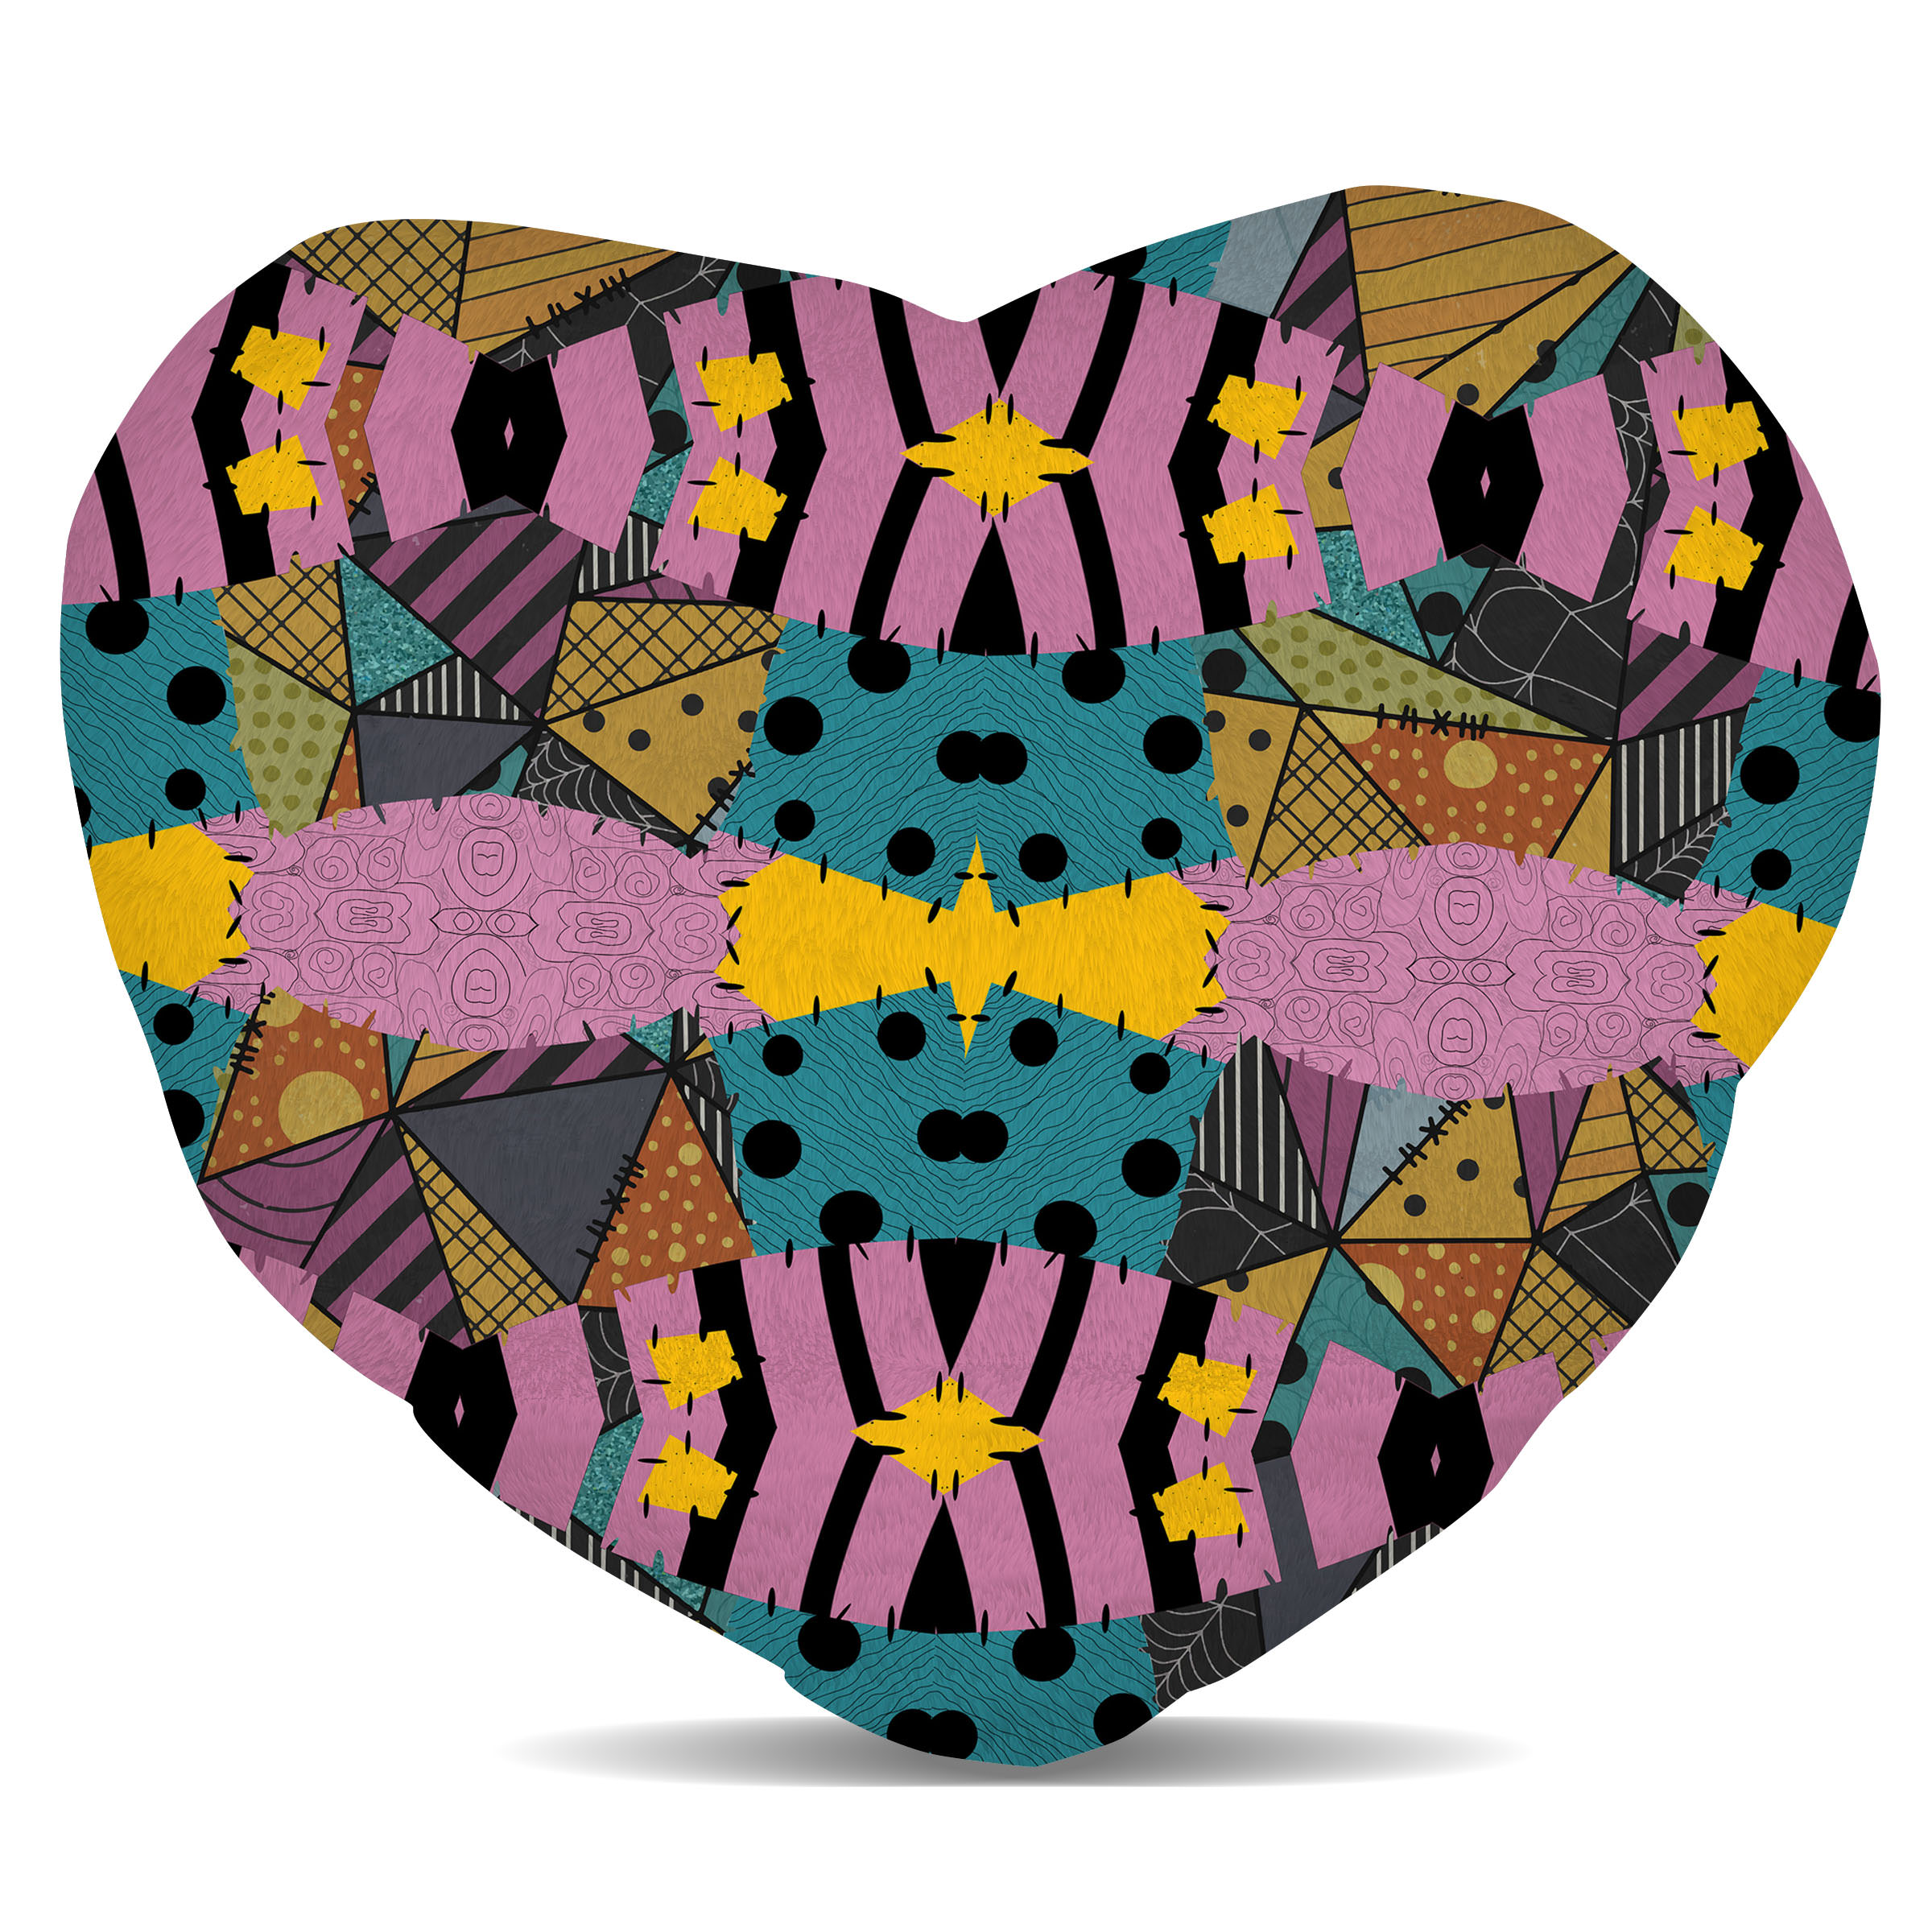 Ragdoll-Patchwork-Sally-Fleece-Cushion-Heart-Round-or-Square-Shaped-Pillow-Ca